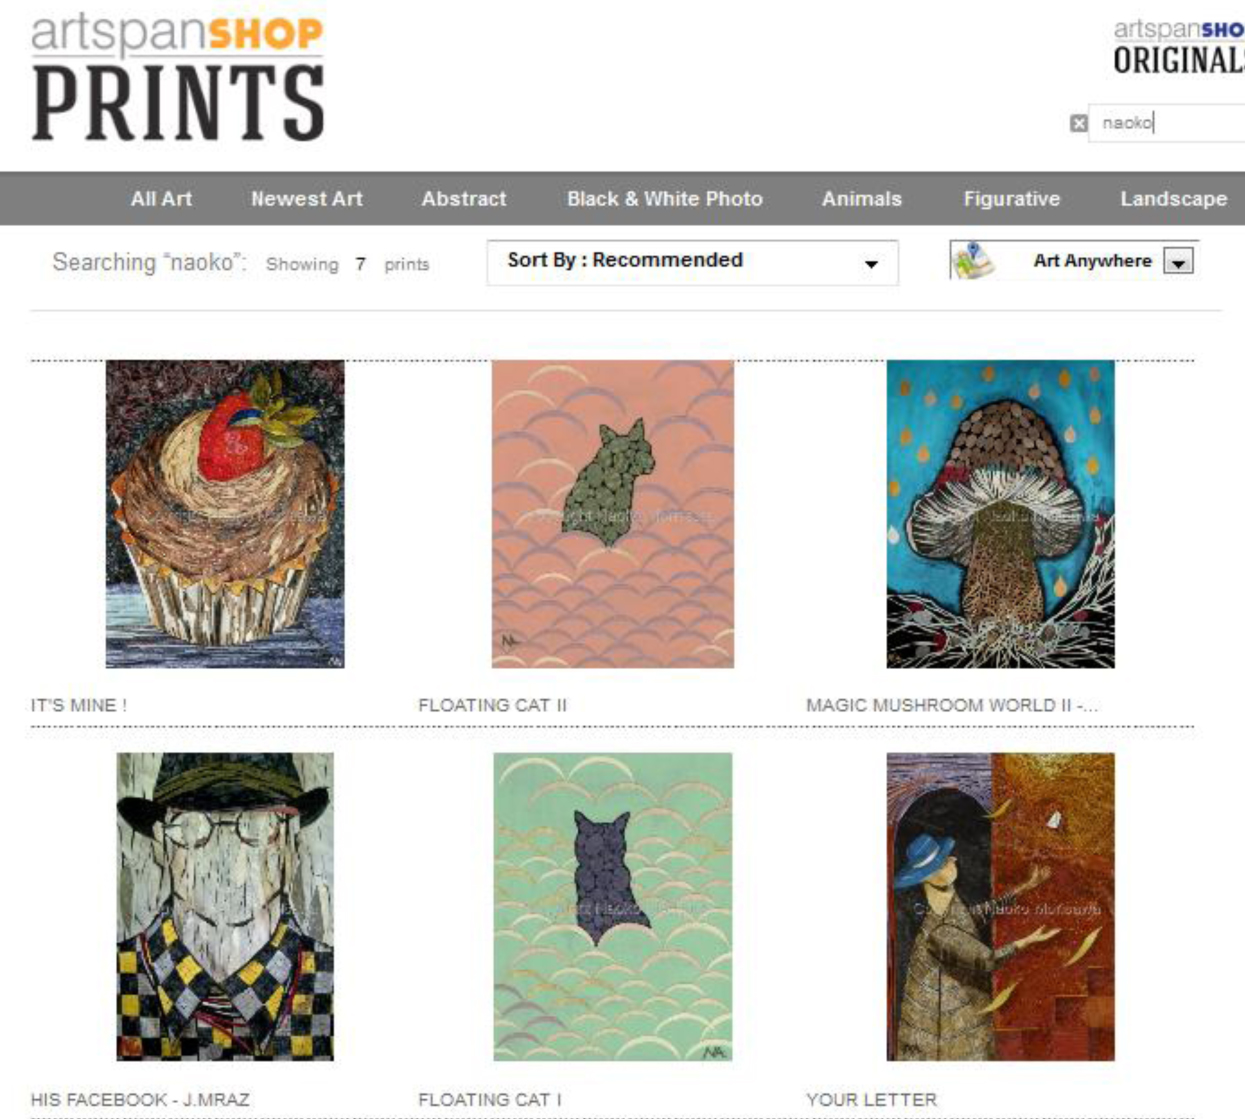 Artspanshop Prints on sale